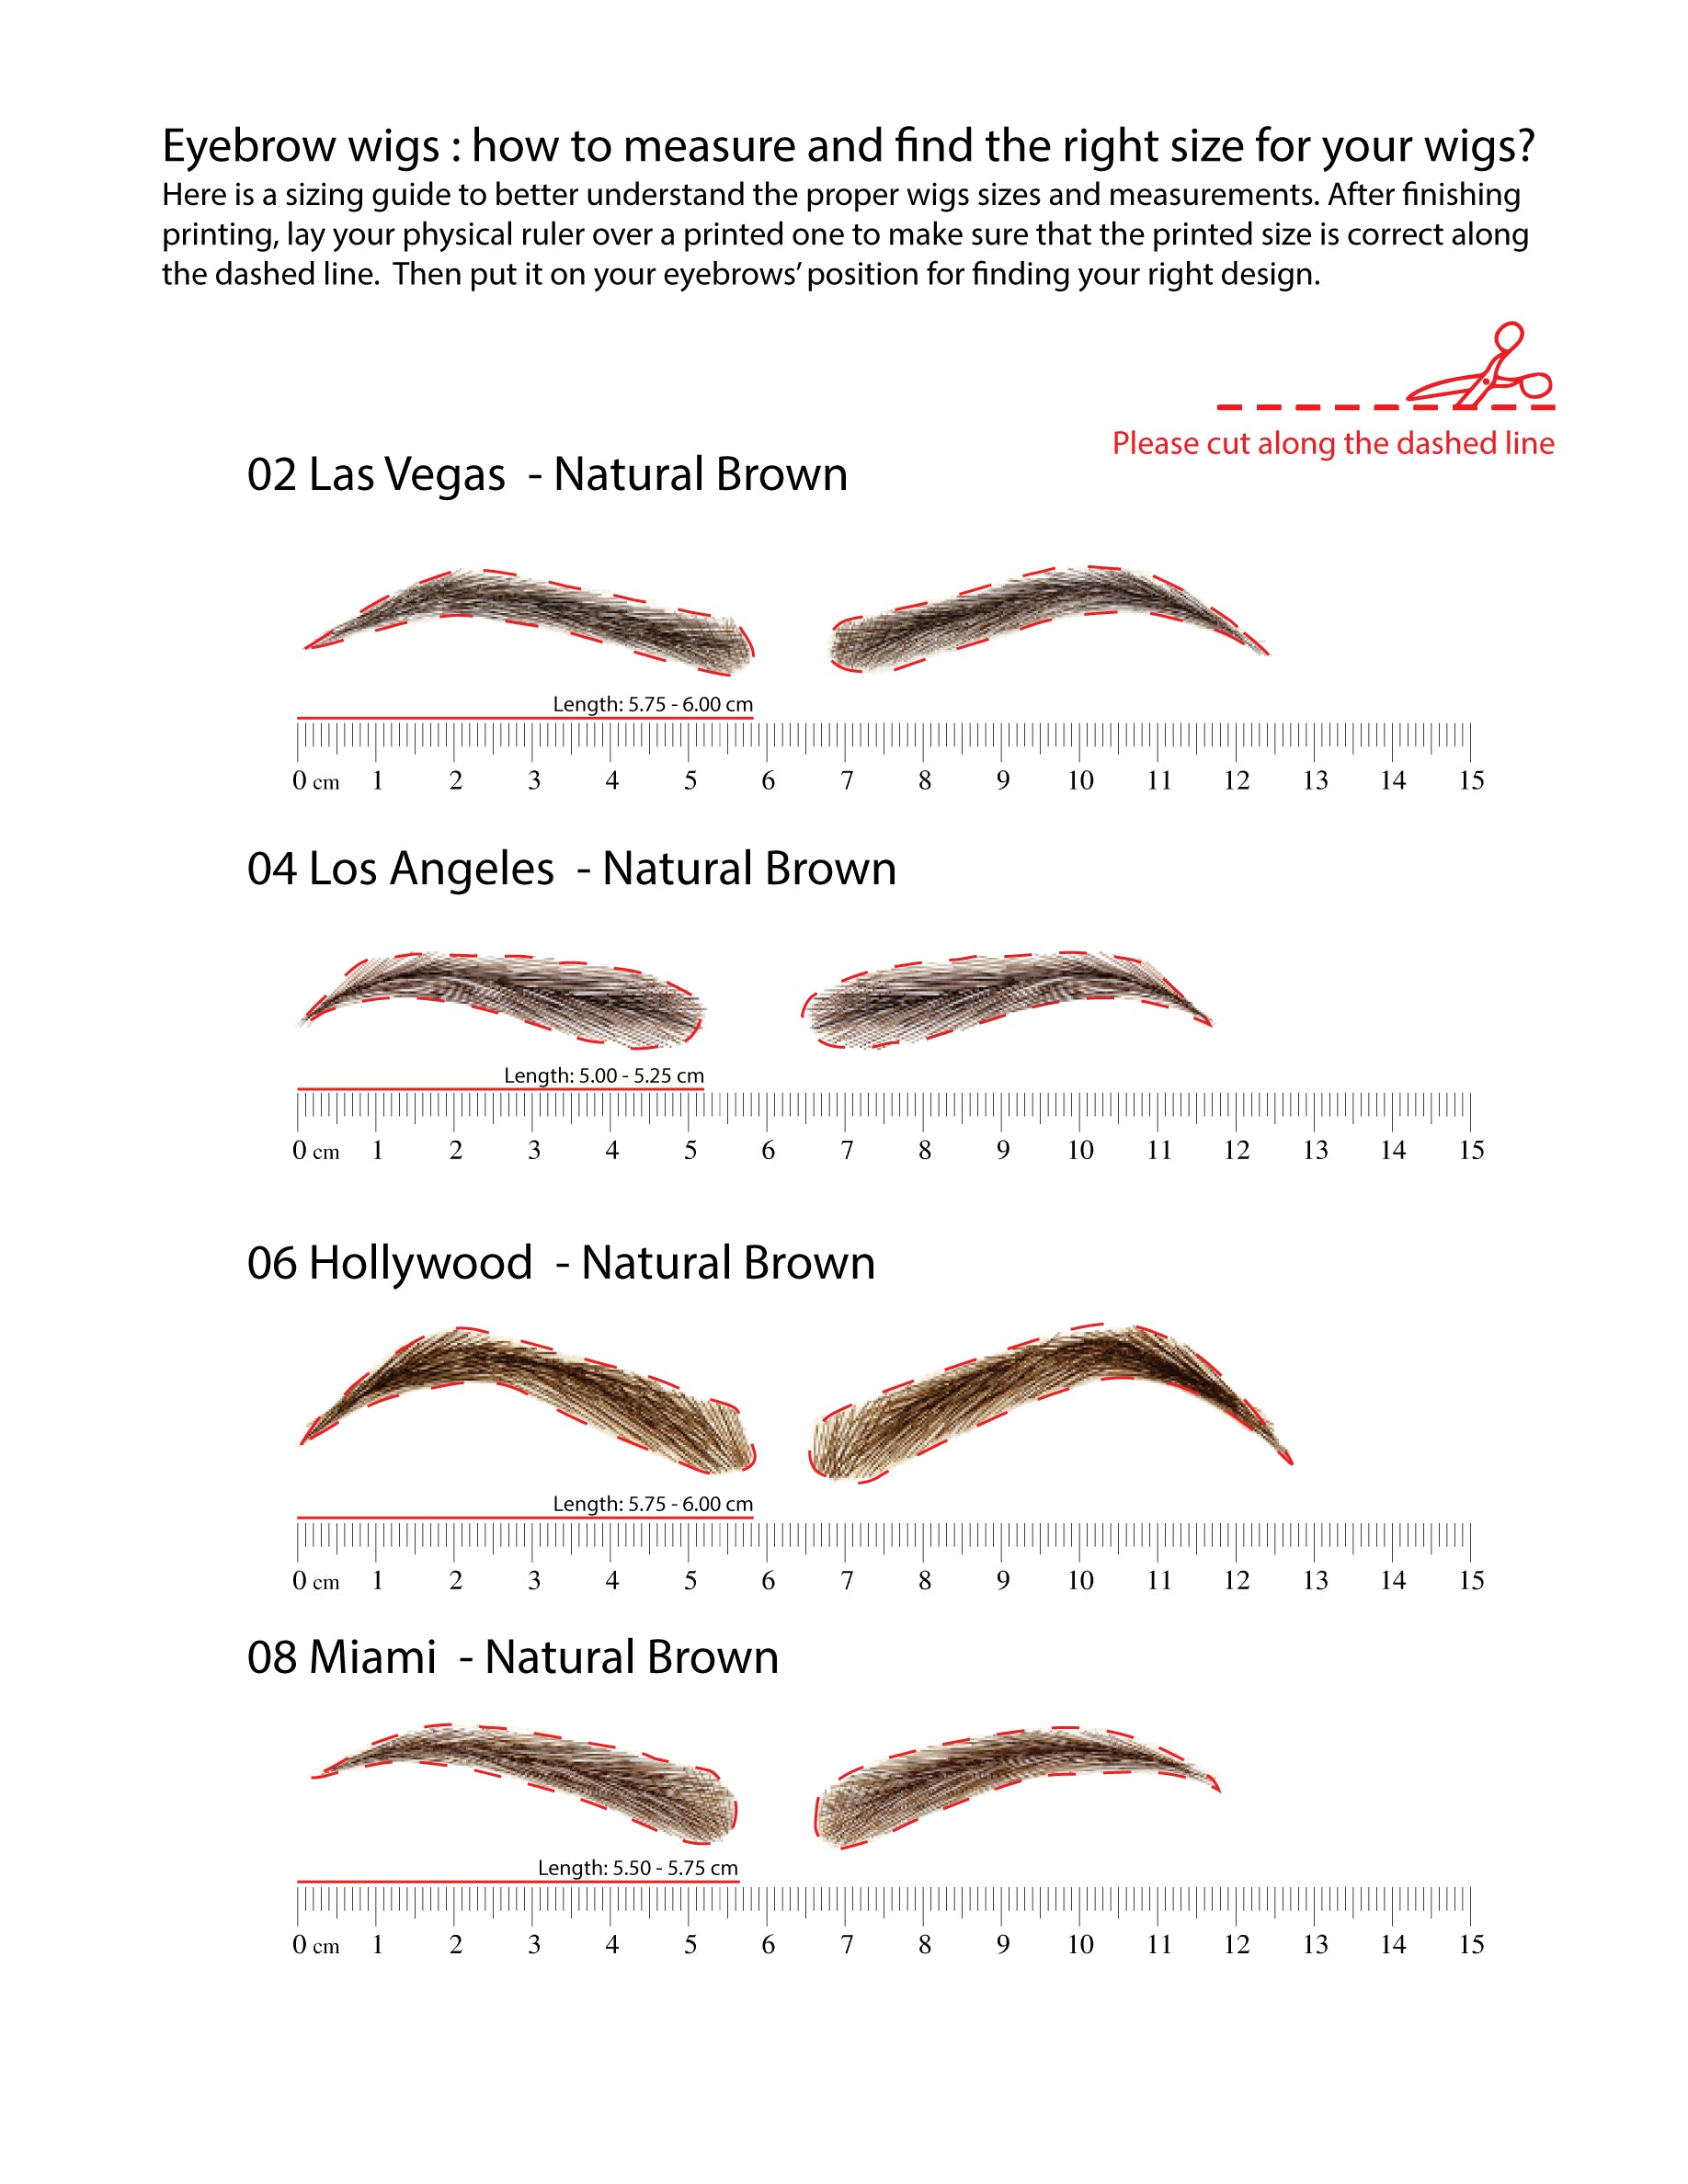 Eyebrow Wigs Sizing Brown